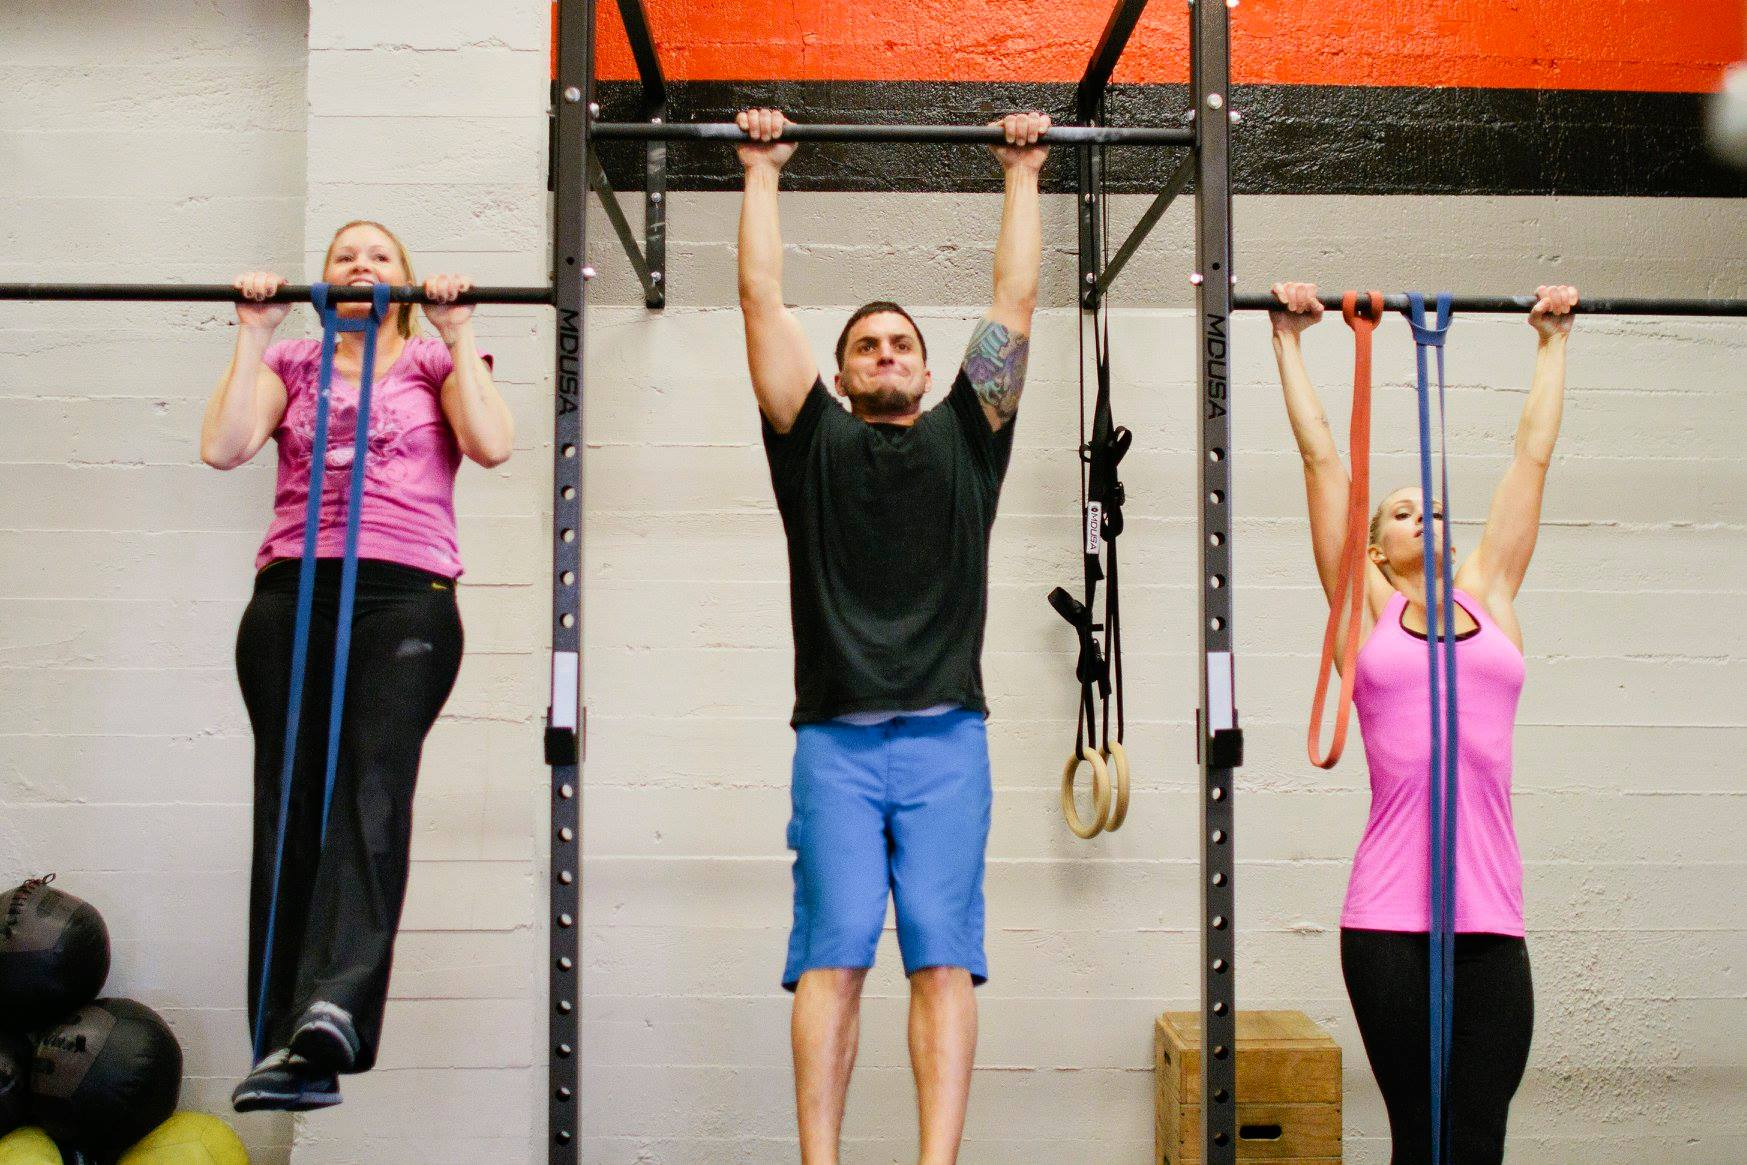 e6401510849 Don t Miss Out! Next Fundamental Group Start Jan 7th - Space Limited -  Tacoma Strength